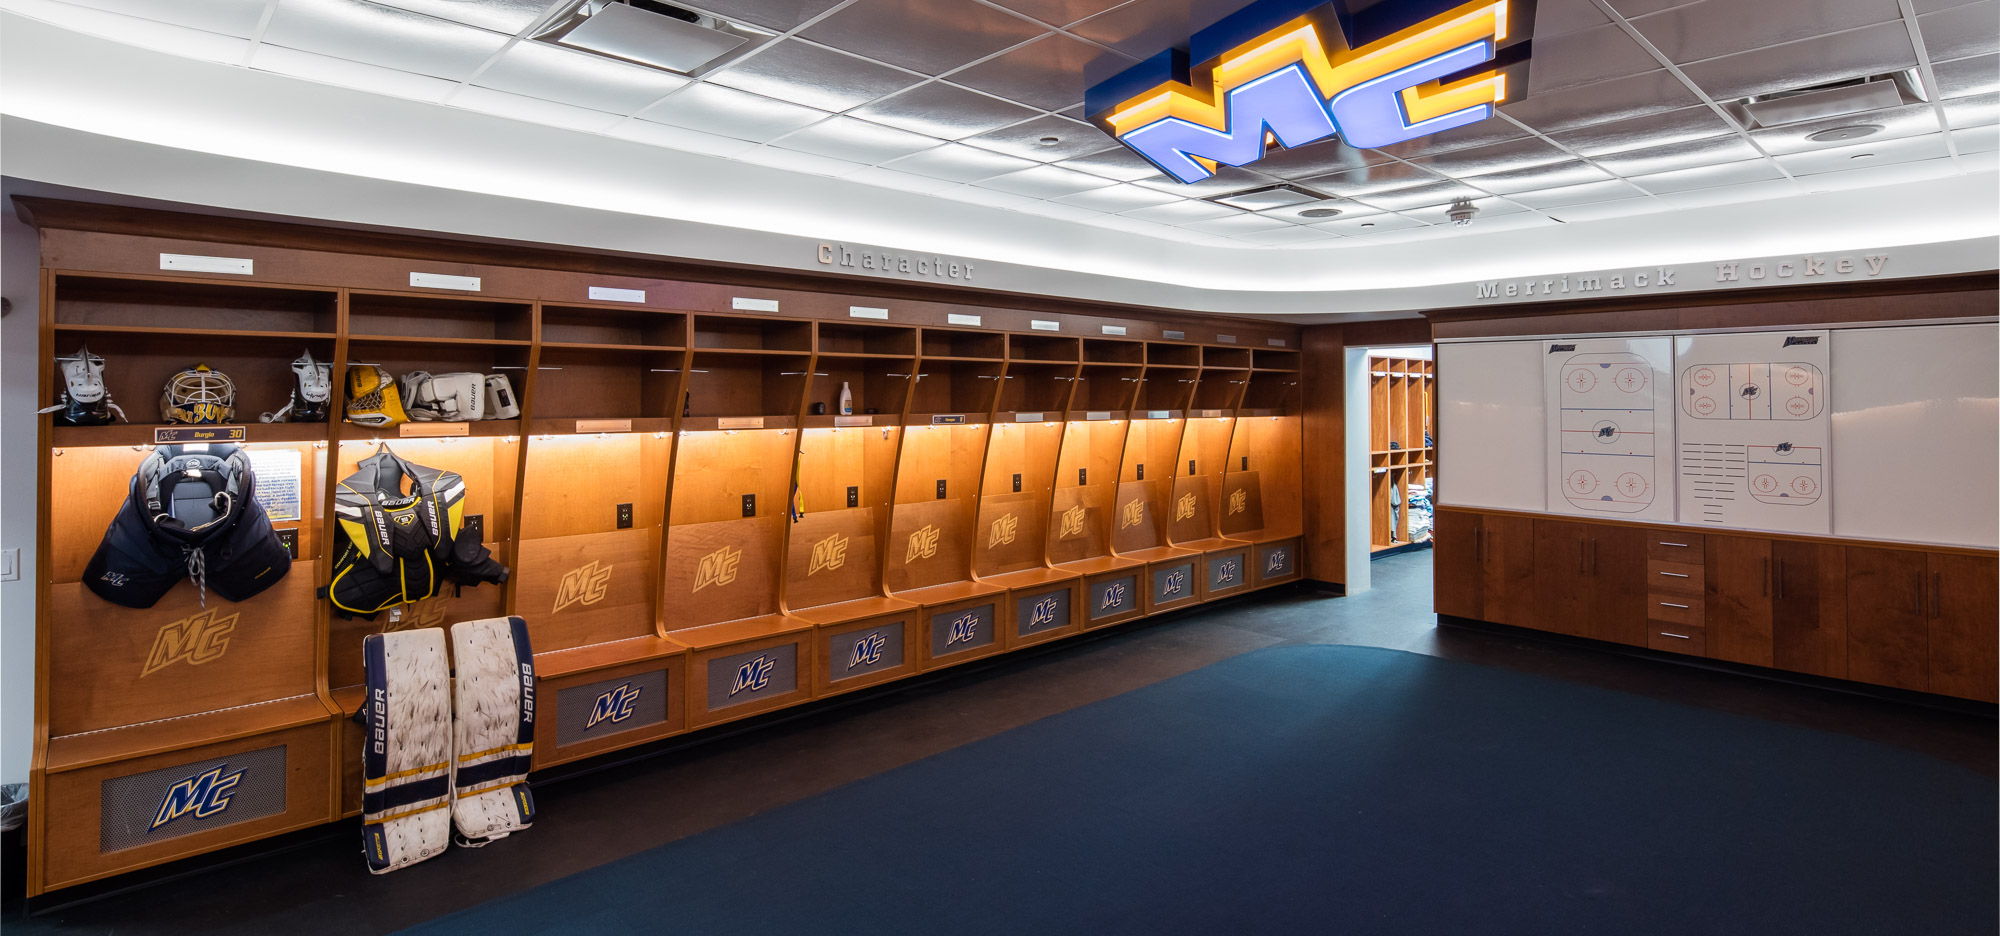 Merrimack College Hockey Locker Rooms Channel Building